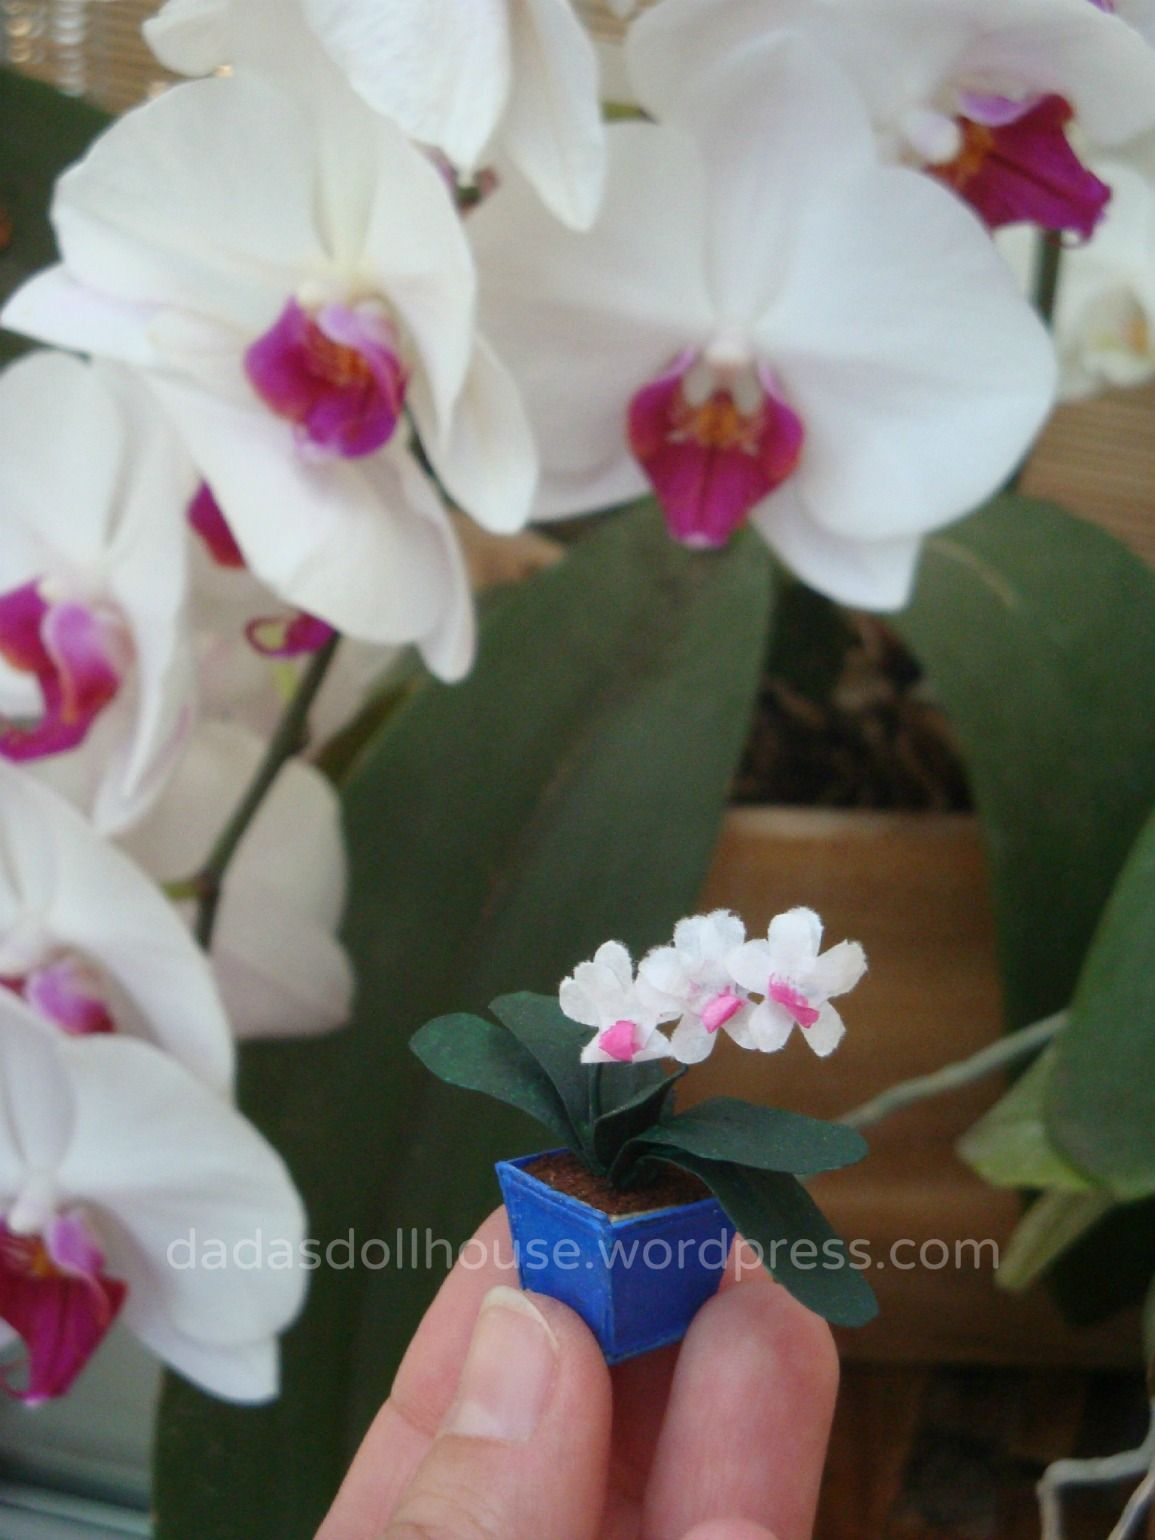 Le Orchidee In Vaso Potted Orchids Pflanzen Orchideen Blumen